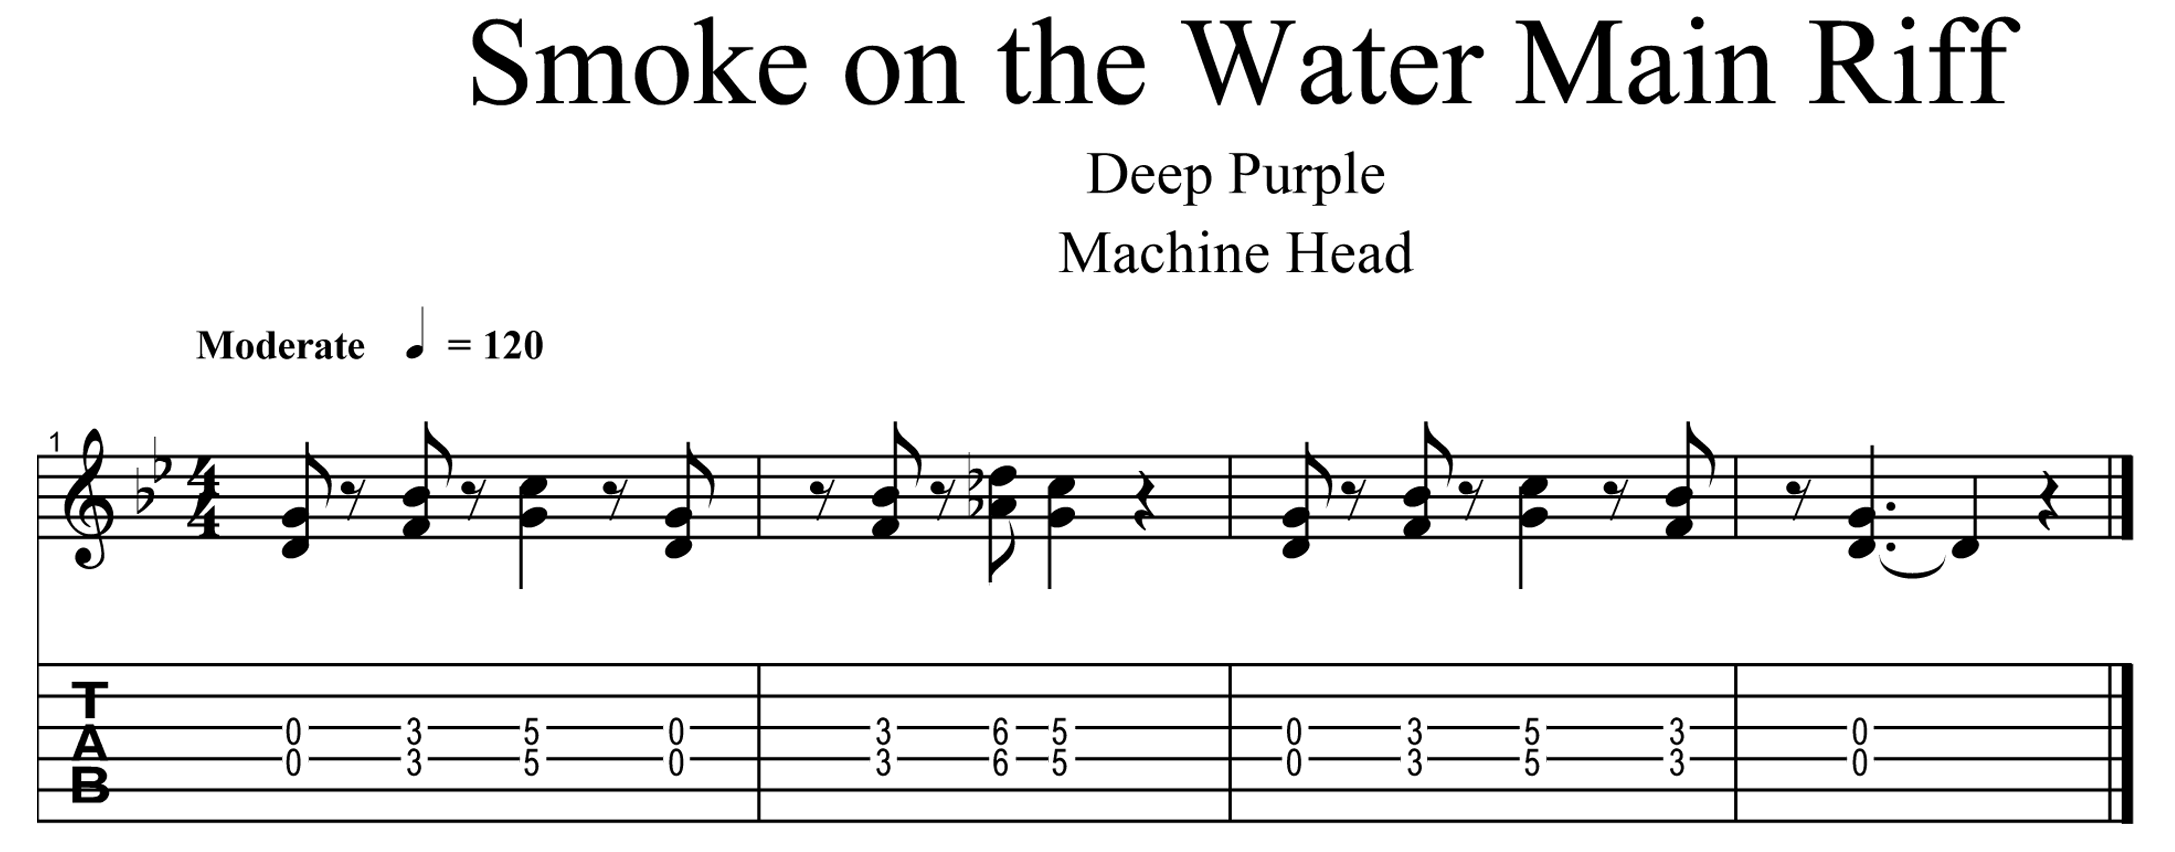 Electric Guitar Chords For Smoke On The Water : smoke on the water guitar lesson global guitar networkglobal guitar network ~ Russianpoet.info Haus und Dekorationen